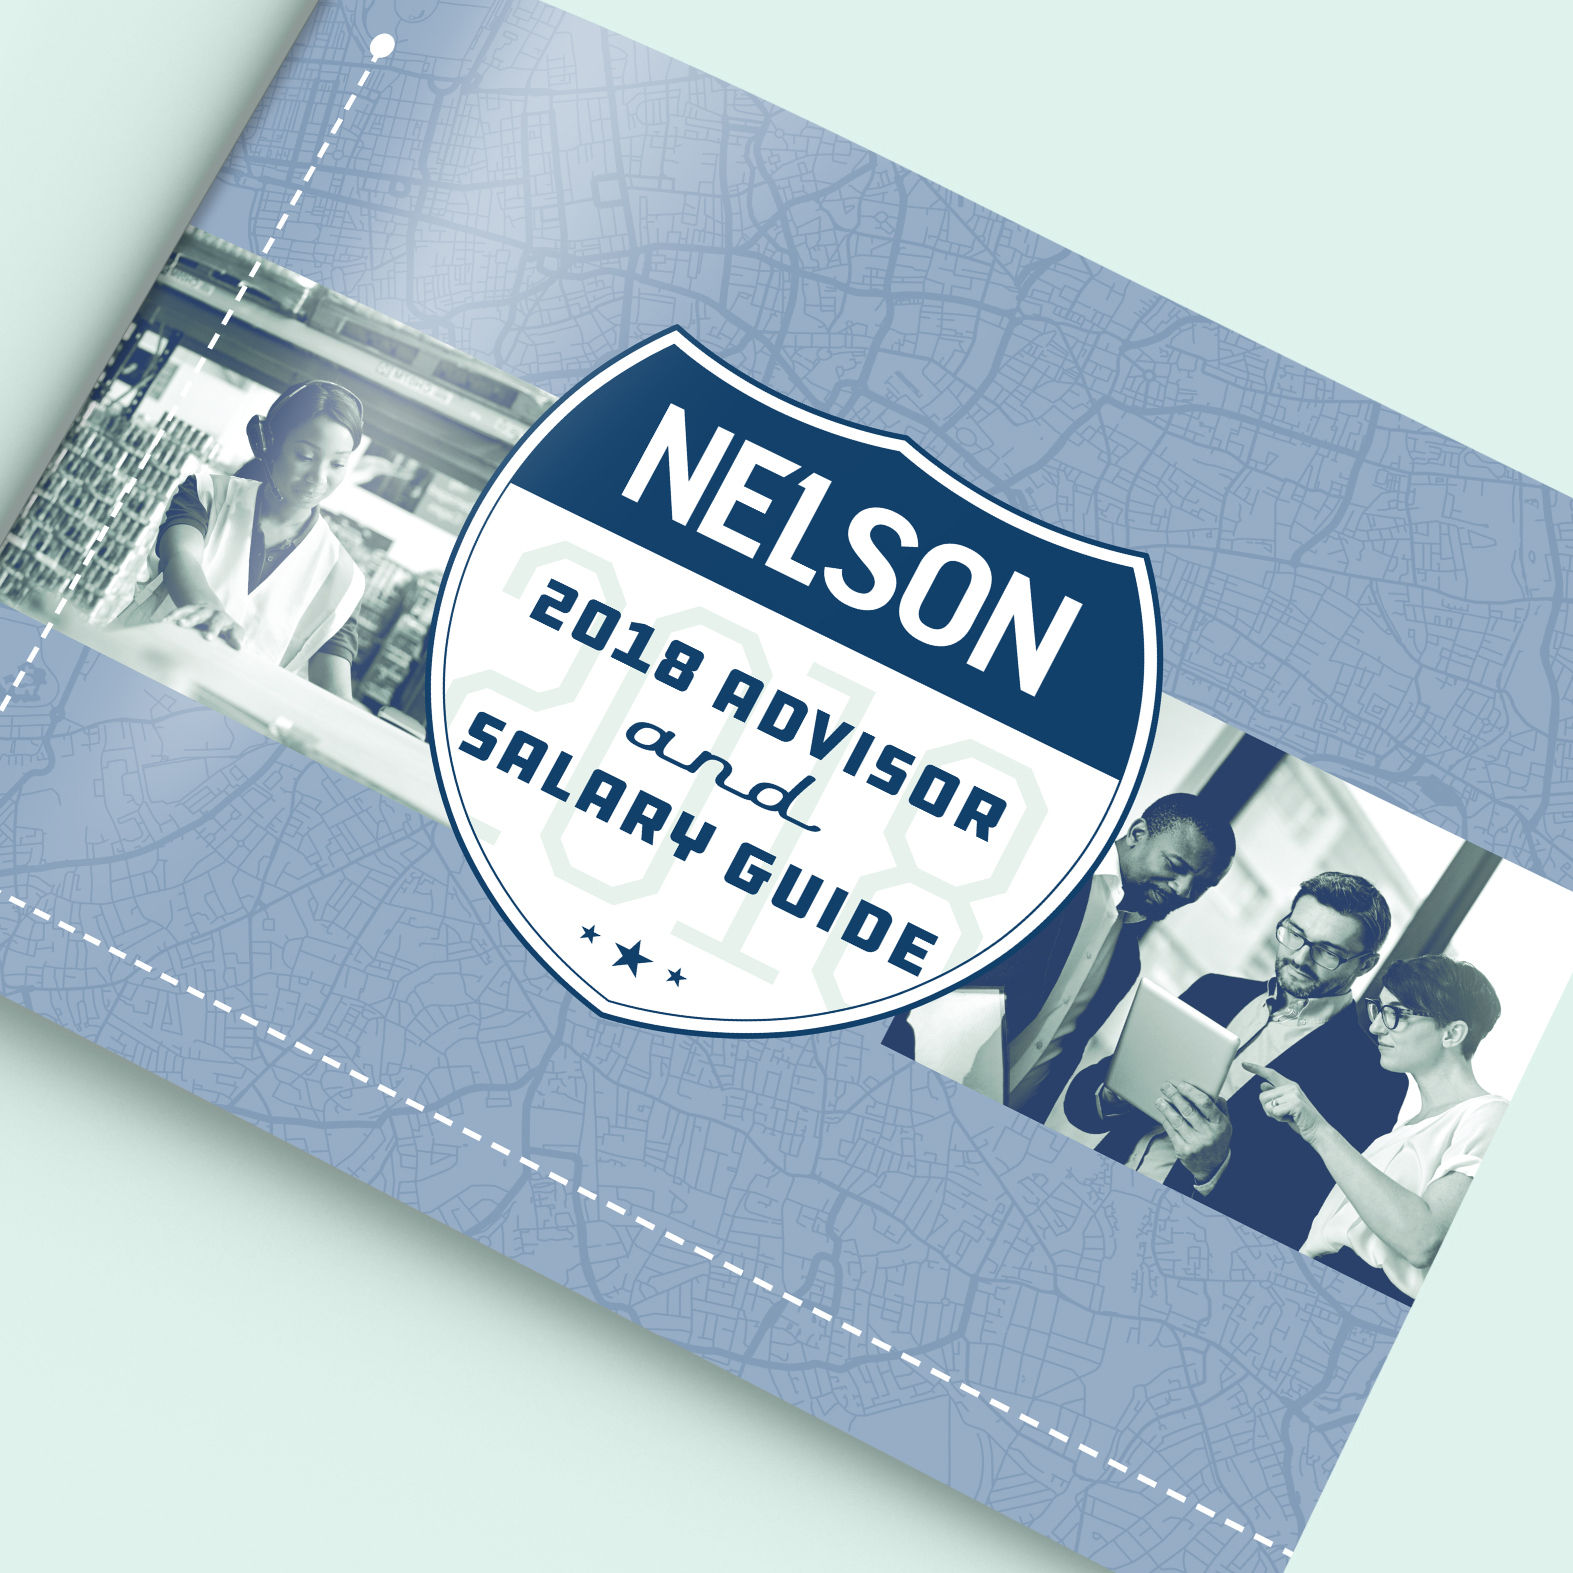 Nelson 2018 Salary Advisor  See More →